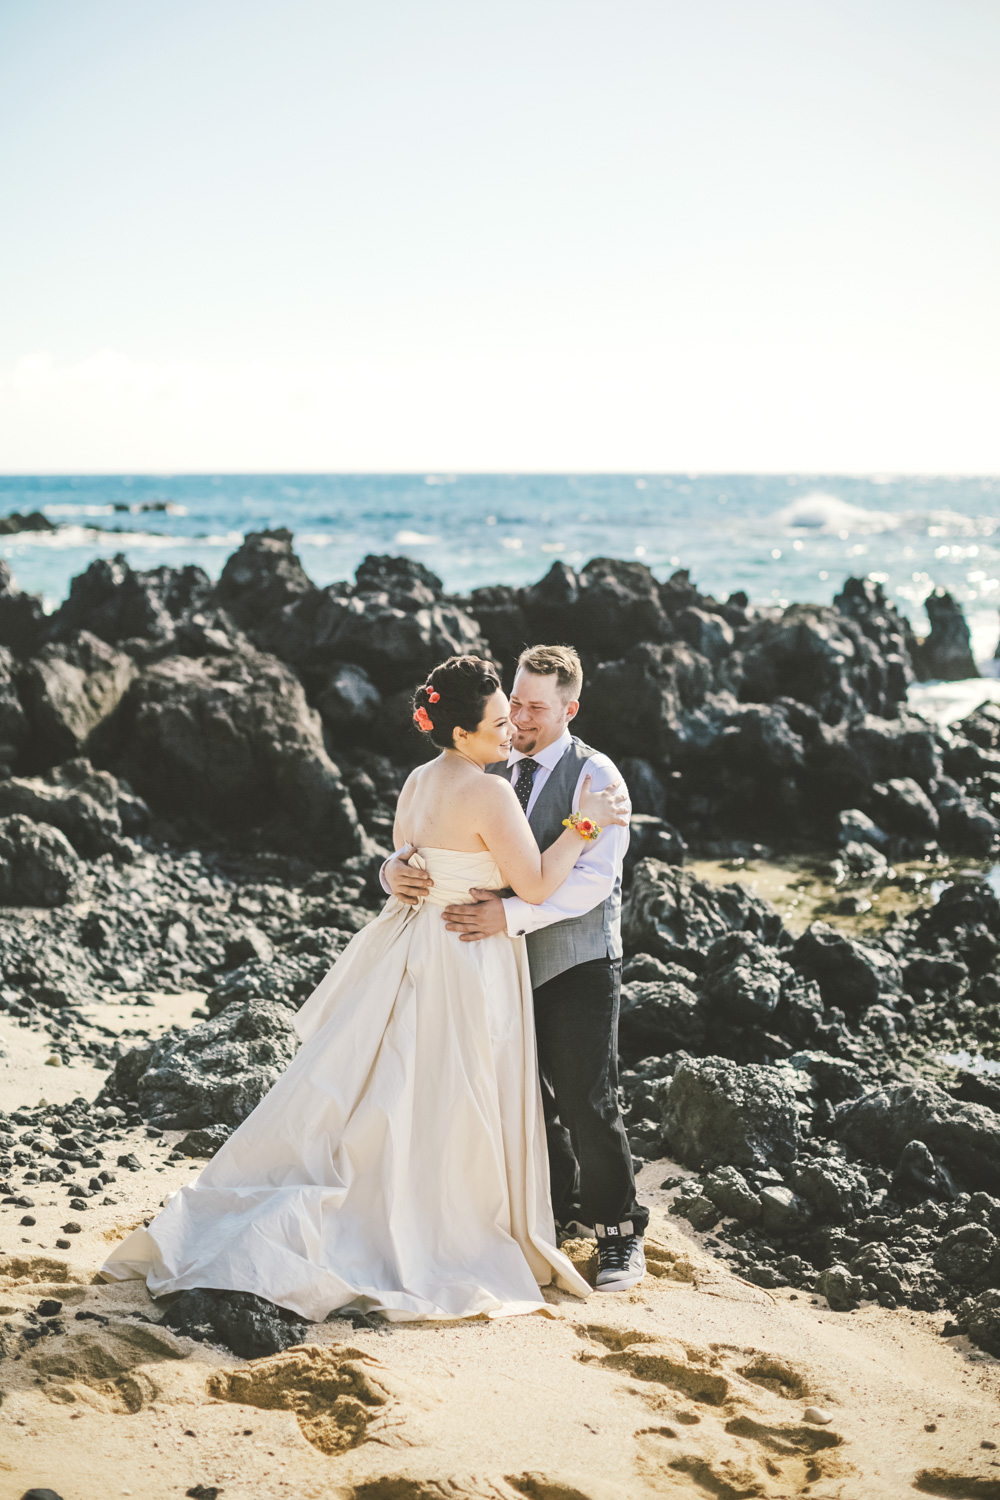 Maui hawaii photographer wedding inspiration_18.jpg